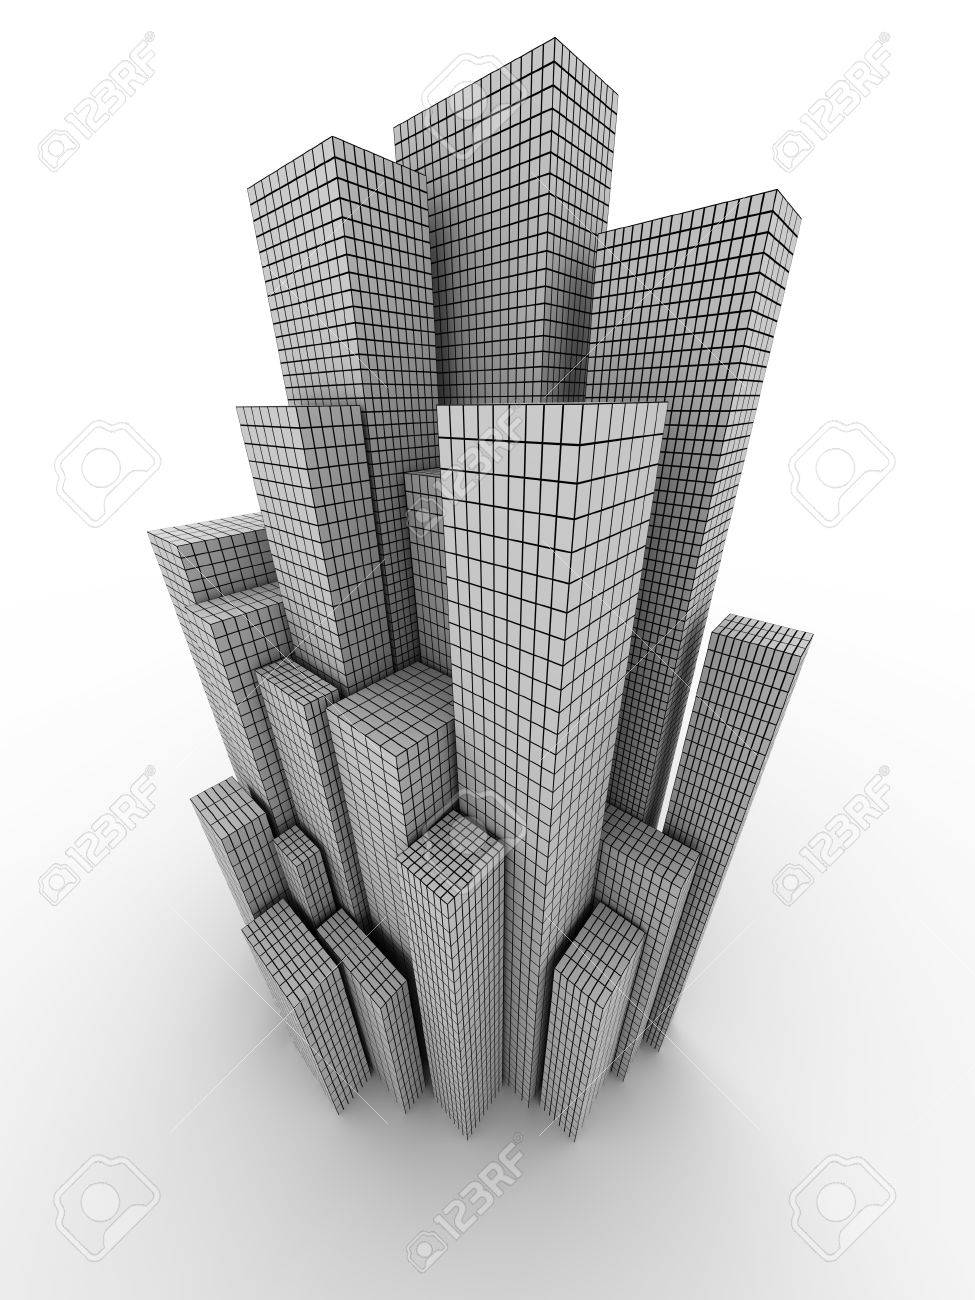 Conceptual city with grid (image can be used for printing or web) Stock Photo - 11556581